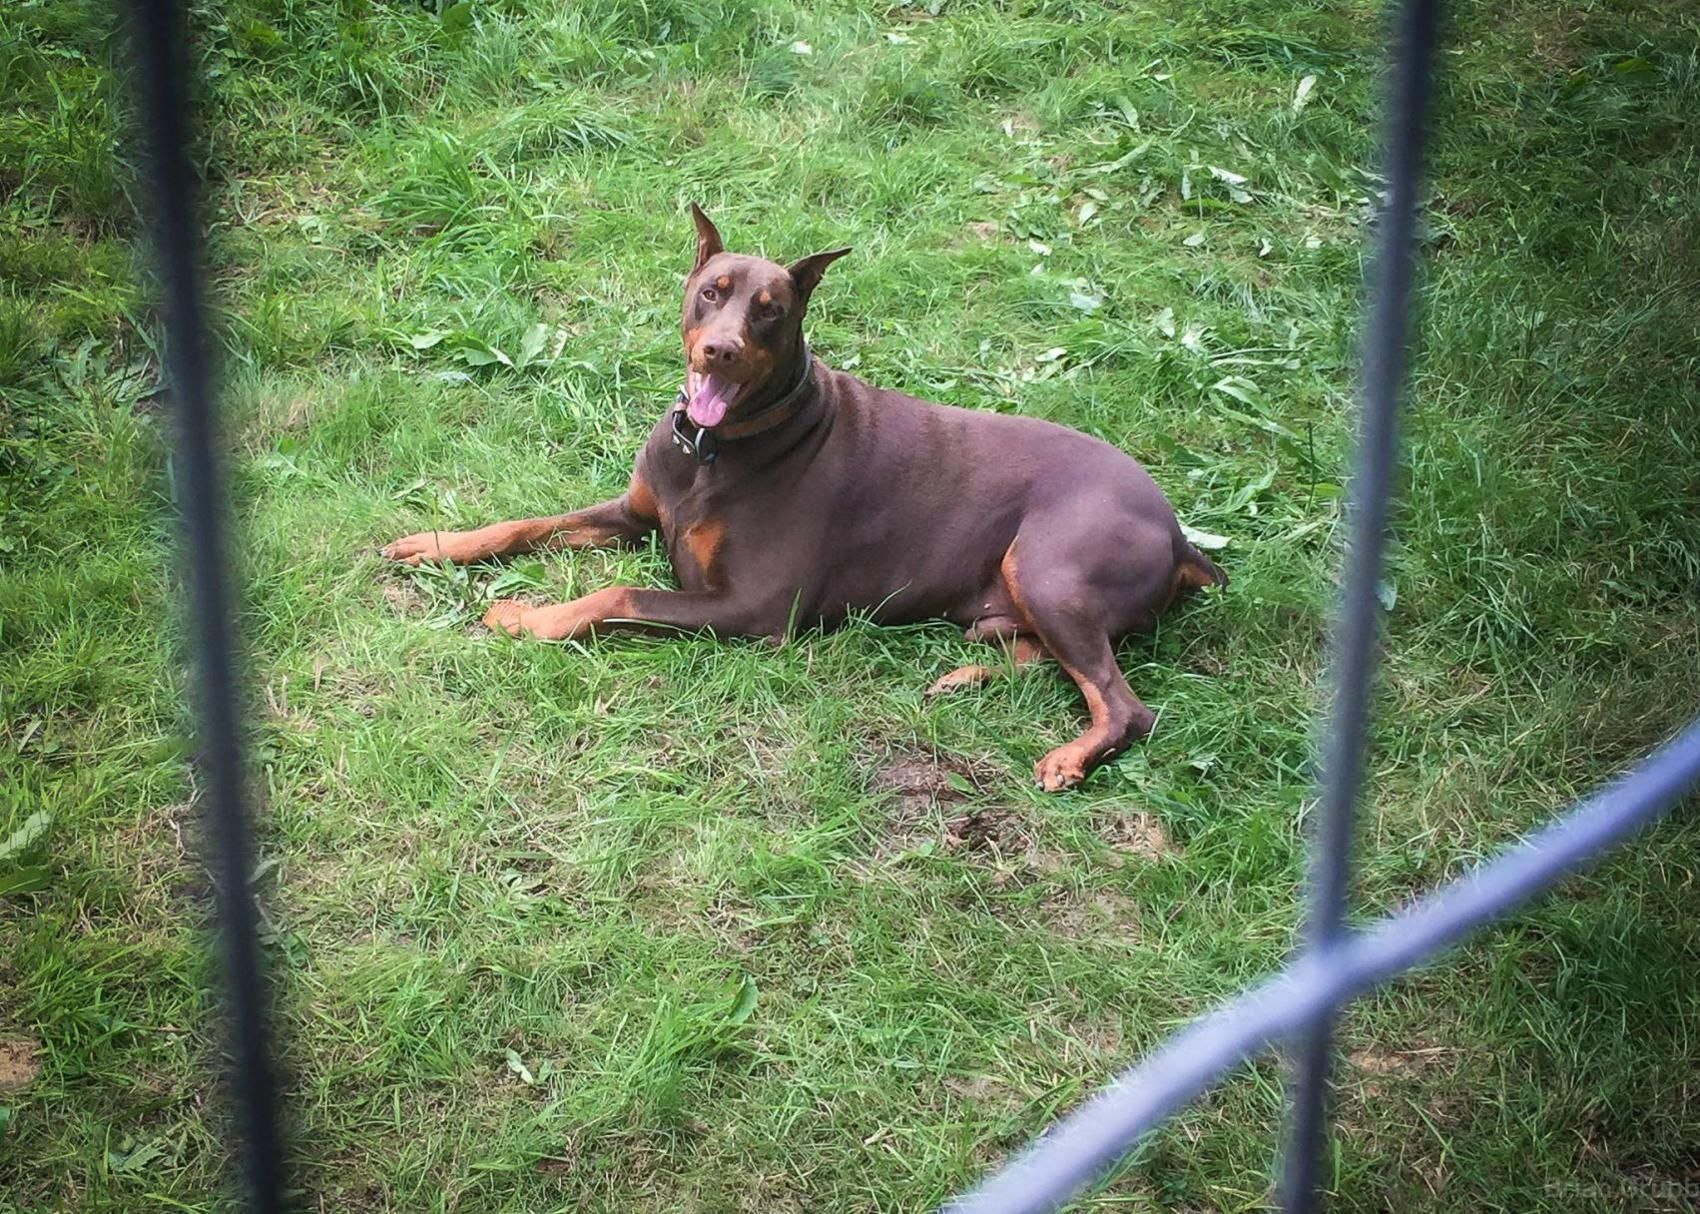 Craigslist Missoula Pets We provide veterinary medical and surgical services for dogs, cats, reptiles and birds. how to search all of craigslist